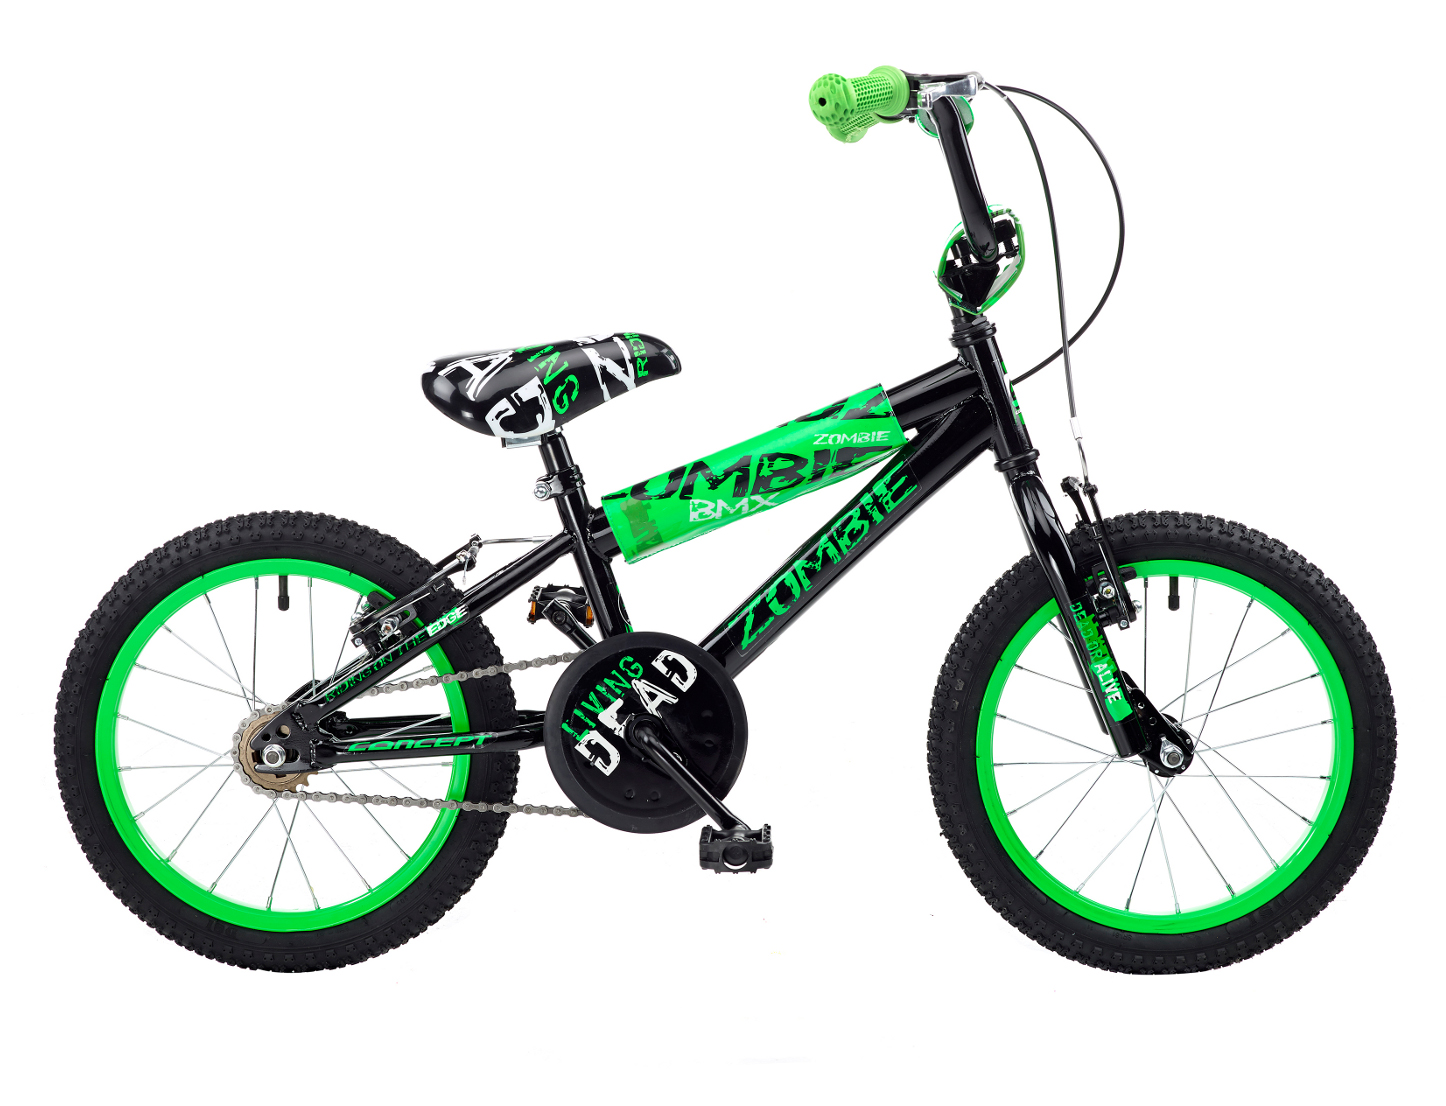 concept zombie 16 rad bmx fahrrad 5 7 yrs ebay. Black Bedroom Furniture Sets. Home Design Ideas